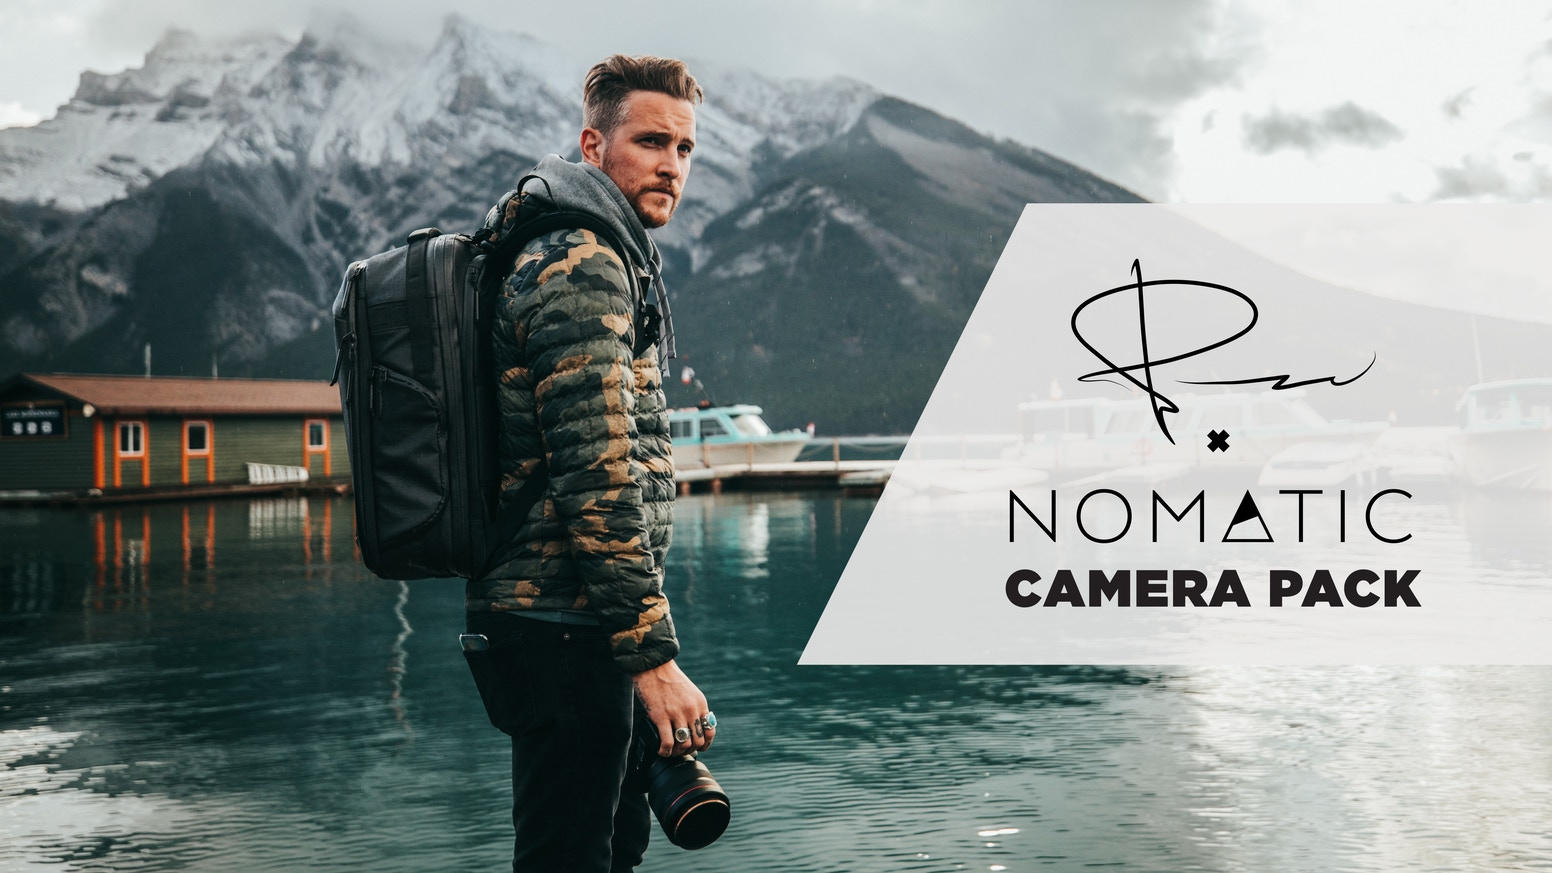 nomatic camera pack 1 image